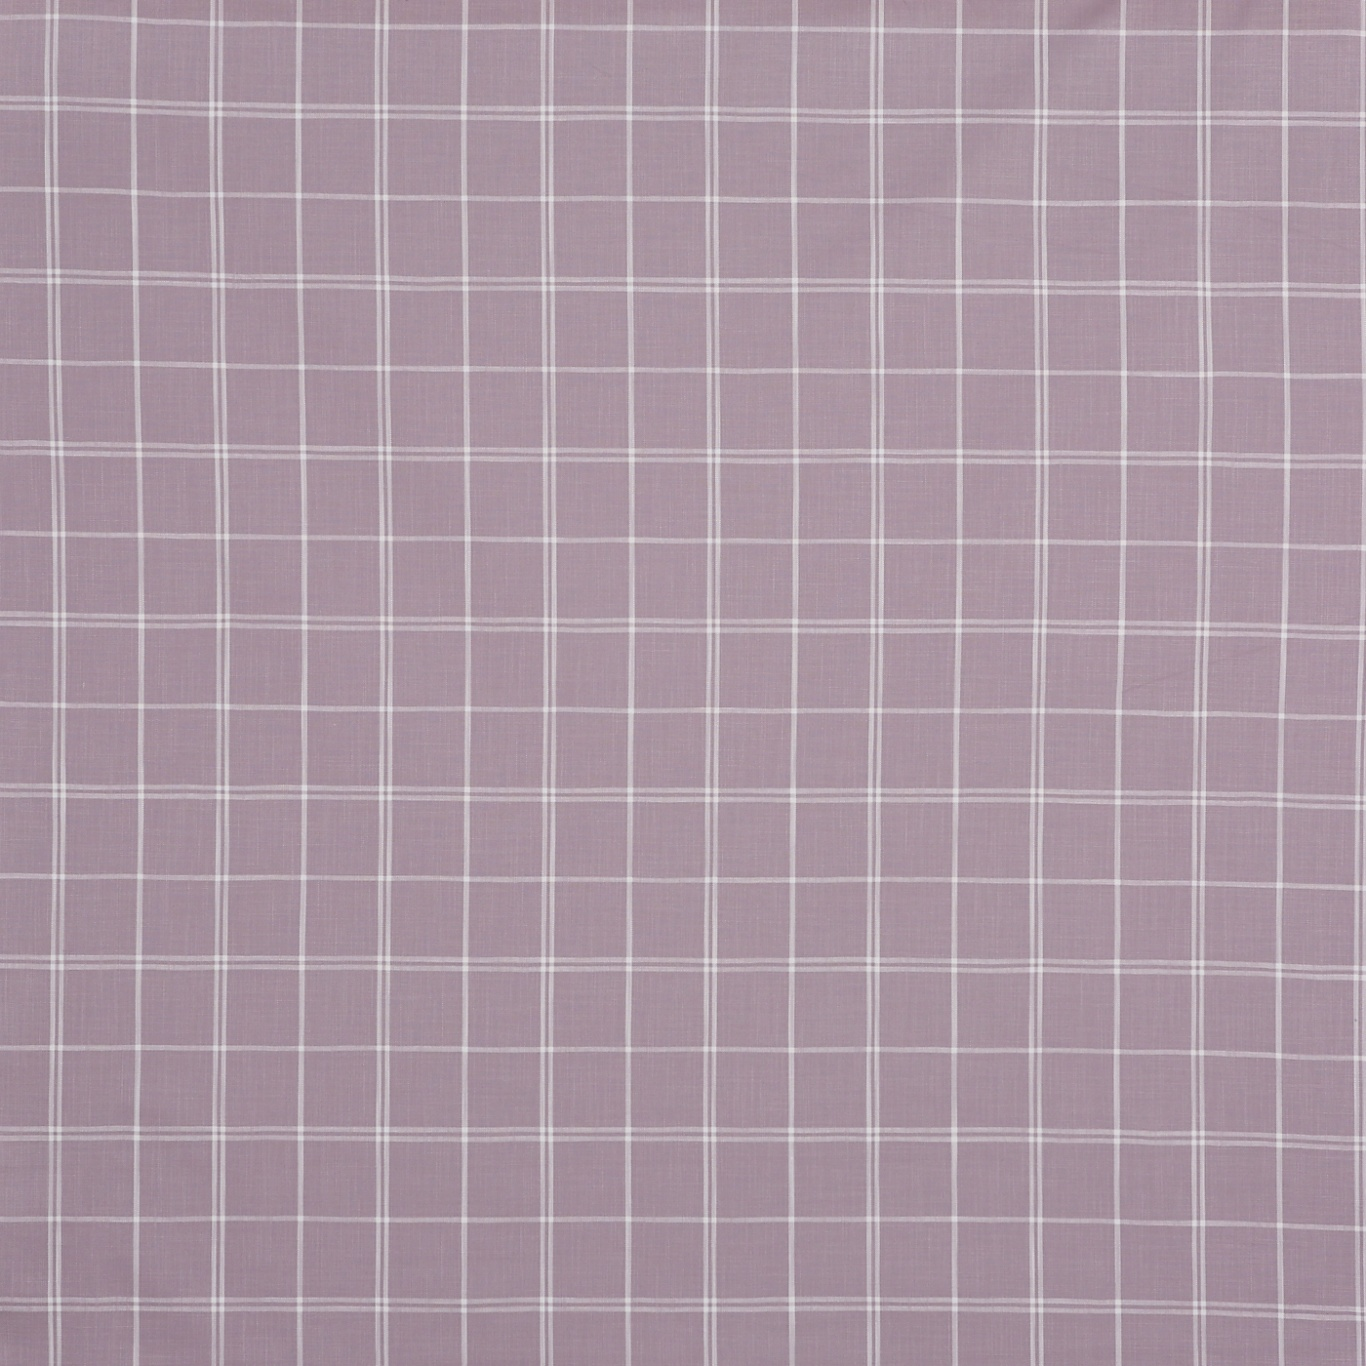 Image of Prestigious Boston Lilac Fabric 3814/804